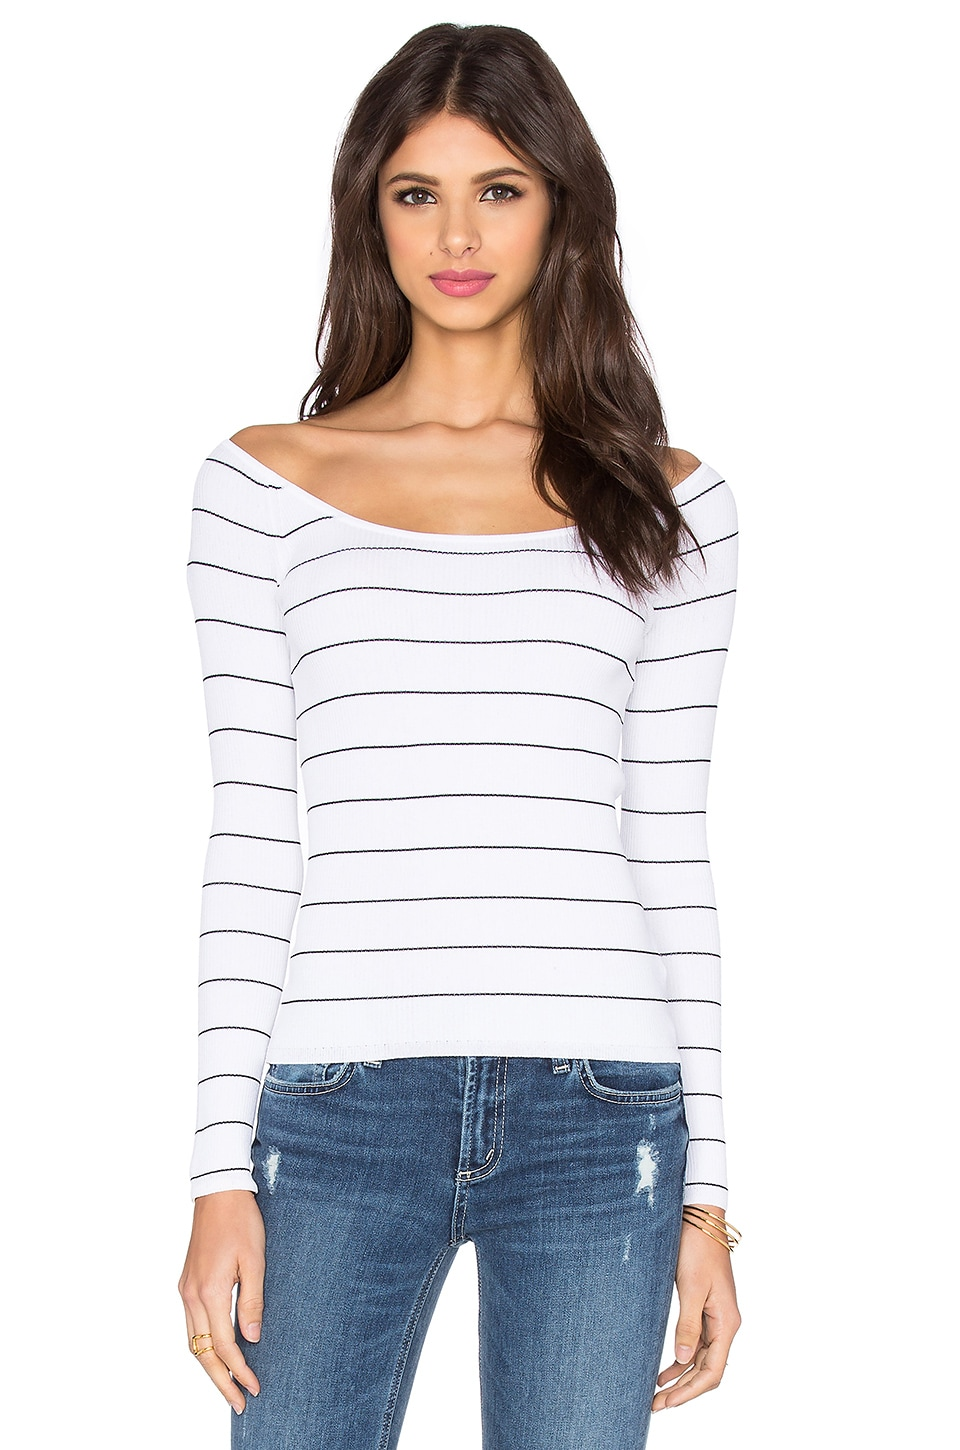 360 Sweater Phuket Off Shoulder Top in White & Black Stripe